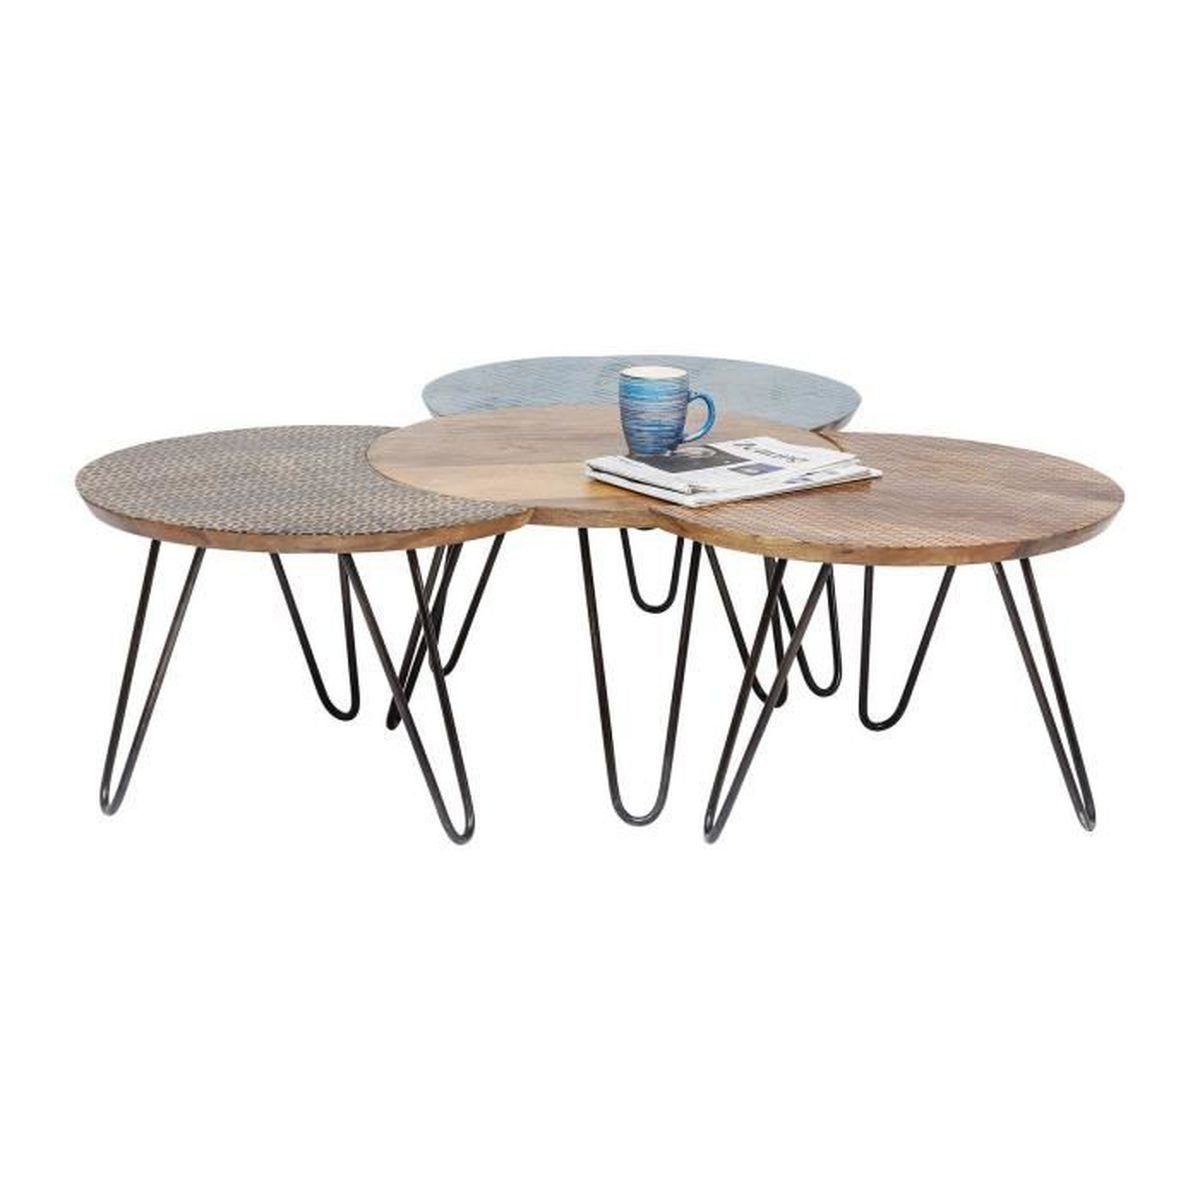 Table basse soleil 4 set kare design achat vente table basse table basse - Table basse soldes design ...